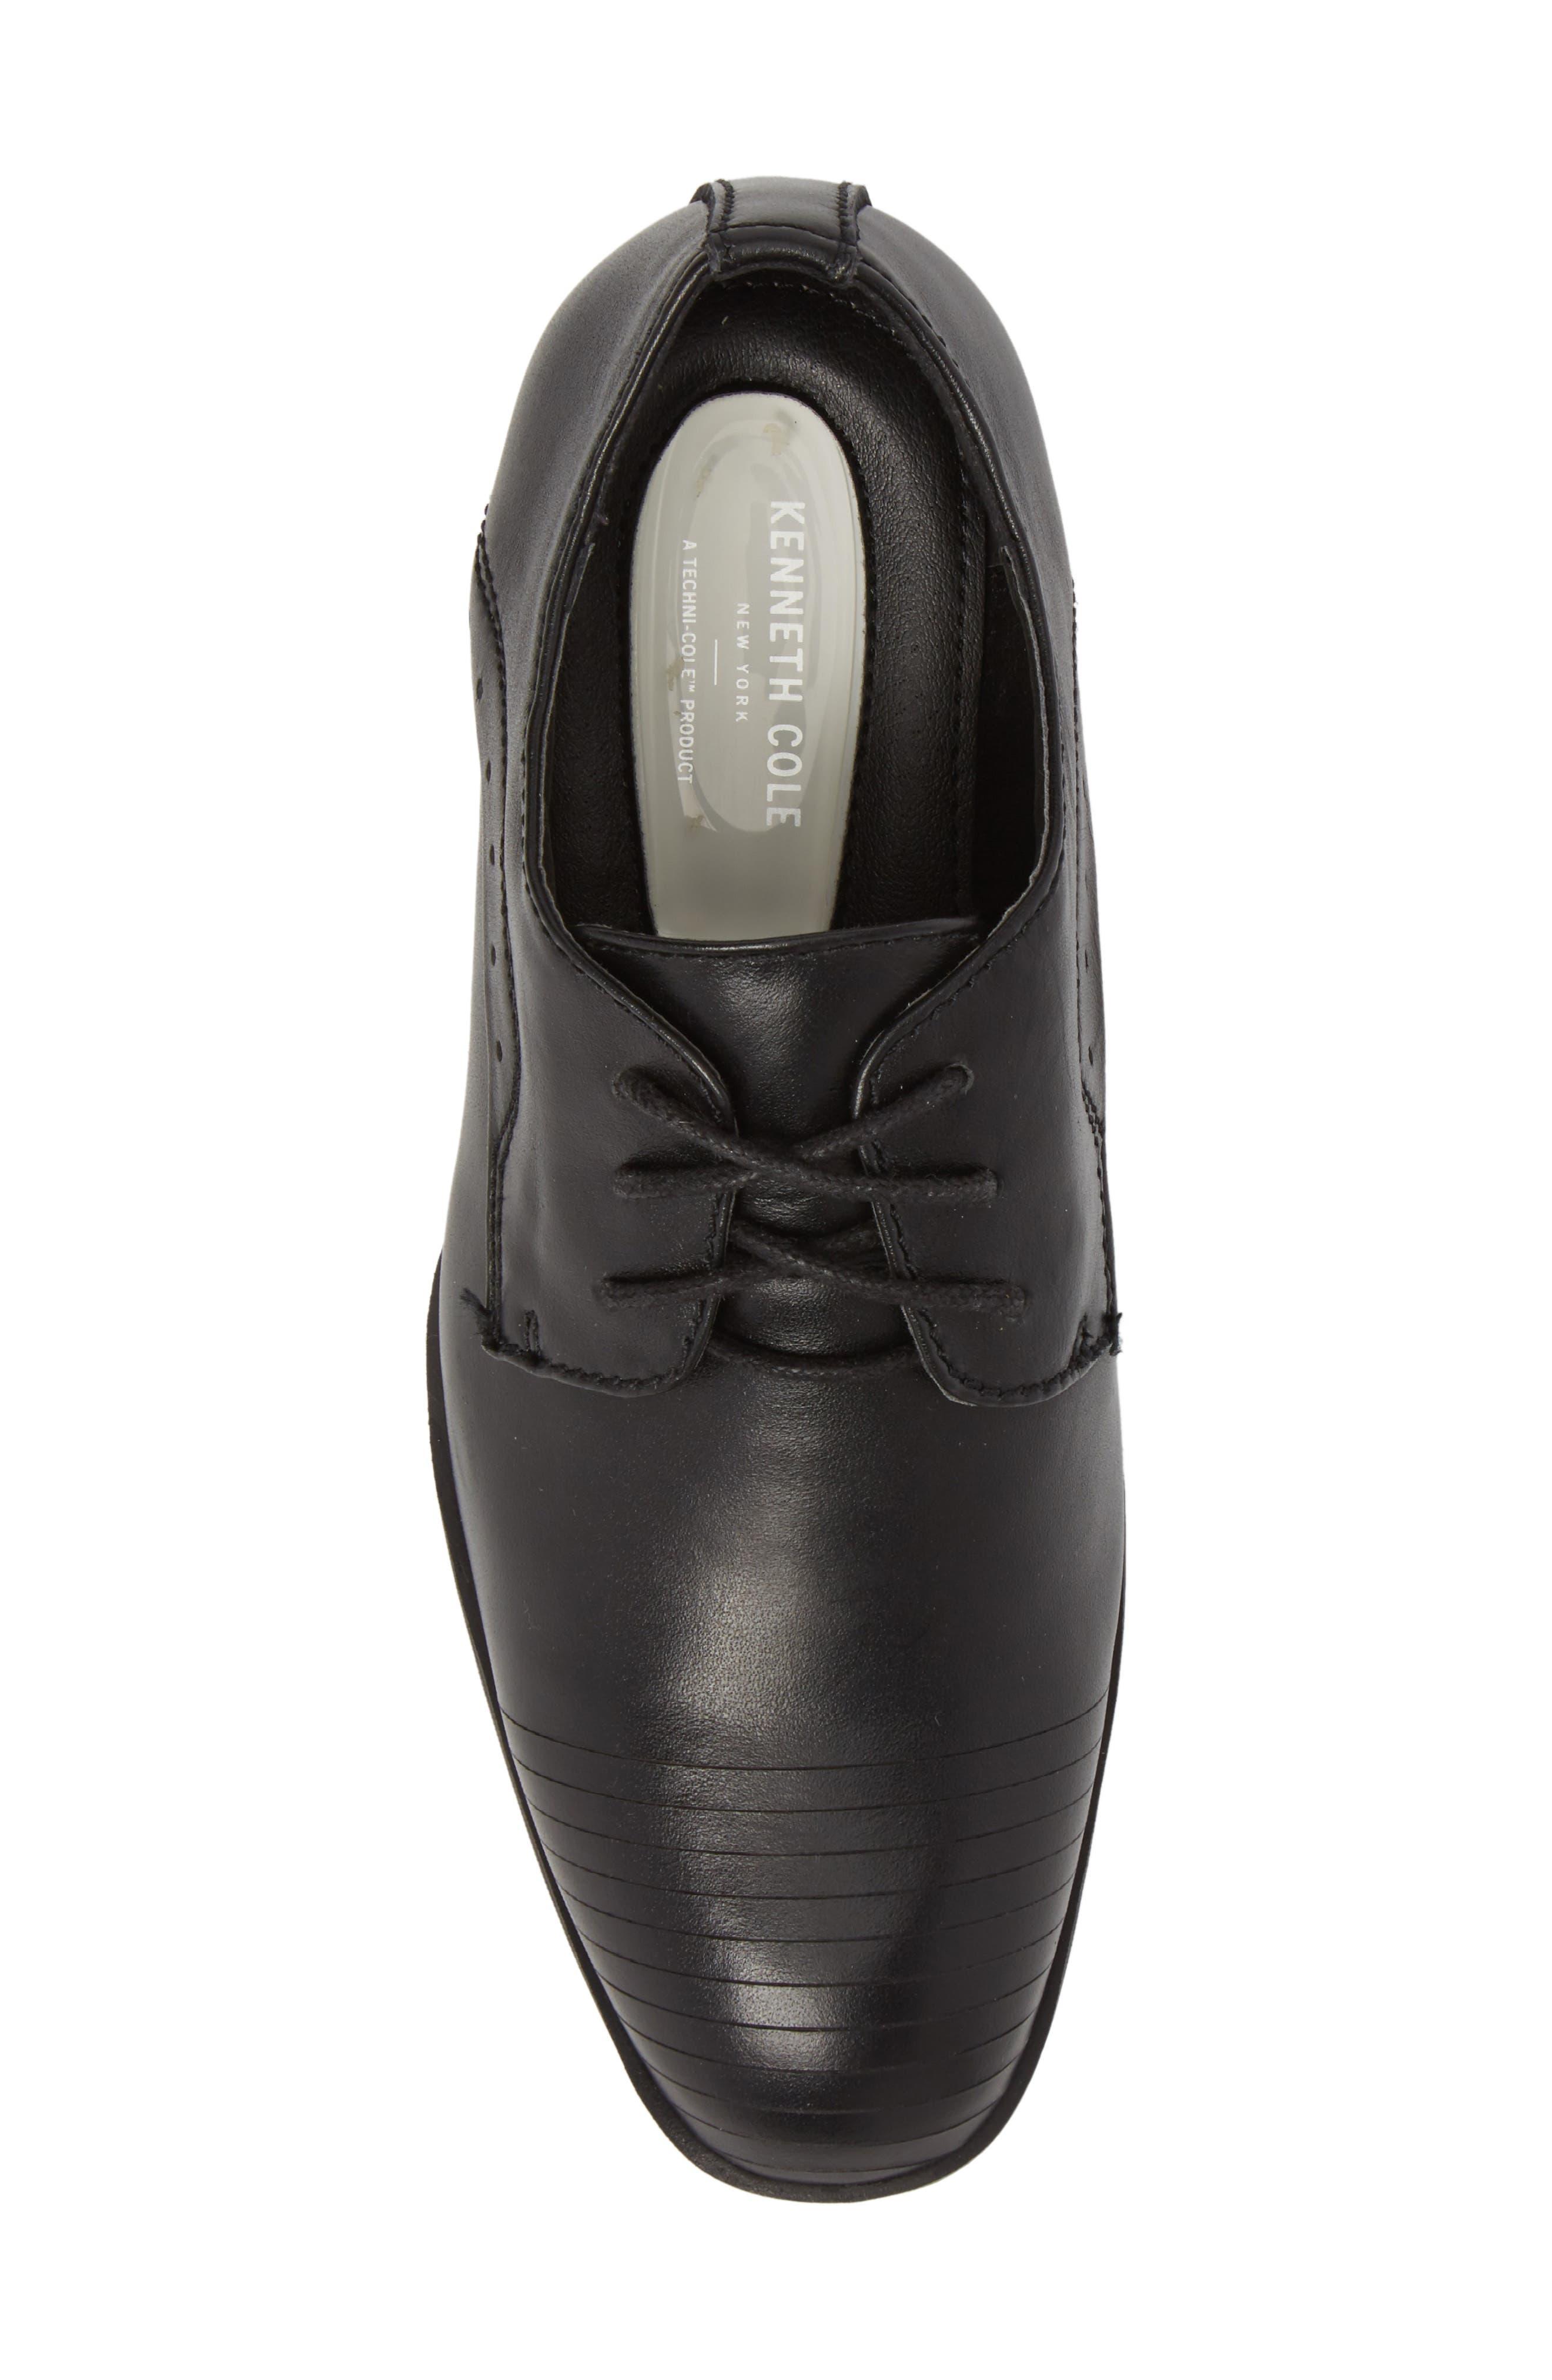 REACTION KENNETH COLE, Straight Line Derby, Alternate thumbnail 5, color, BLACK